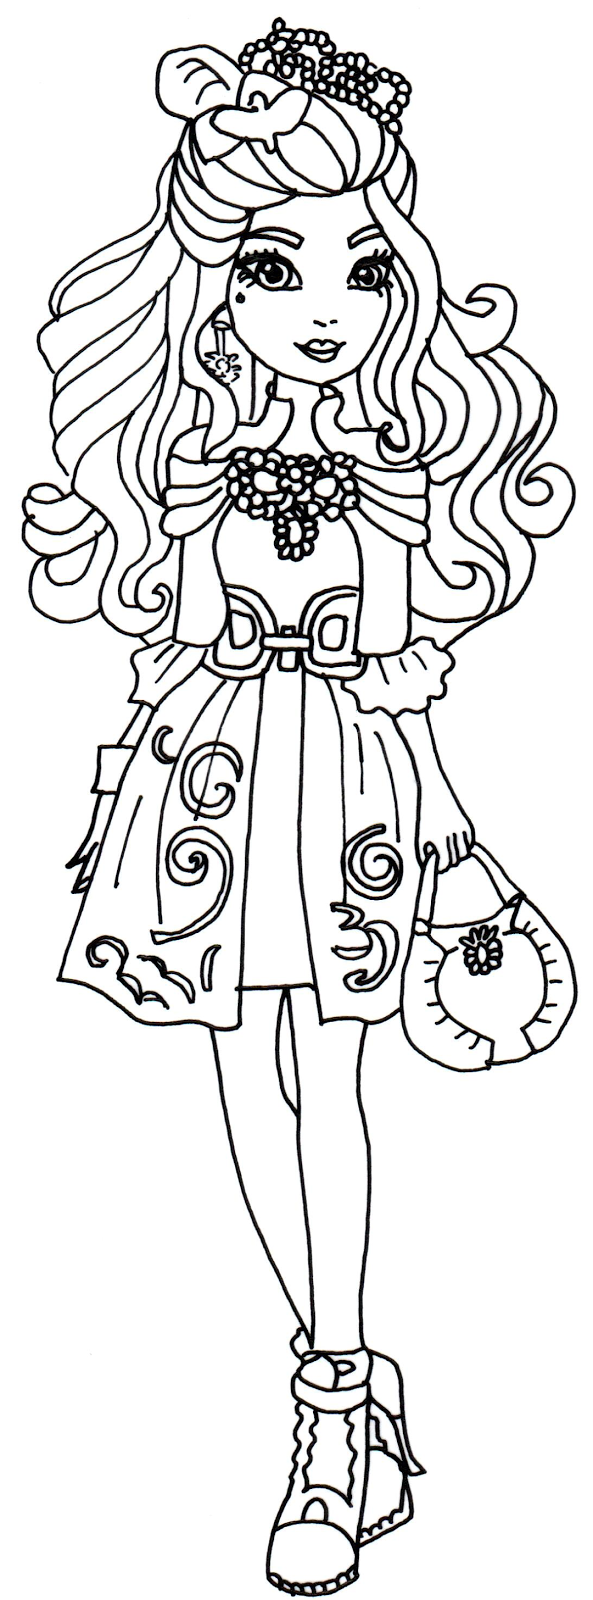 After Coloring Page Pictures To Pin On Pinterest